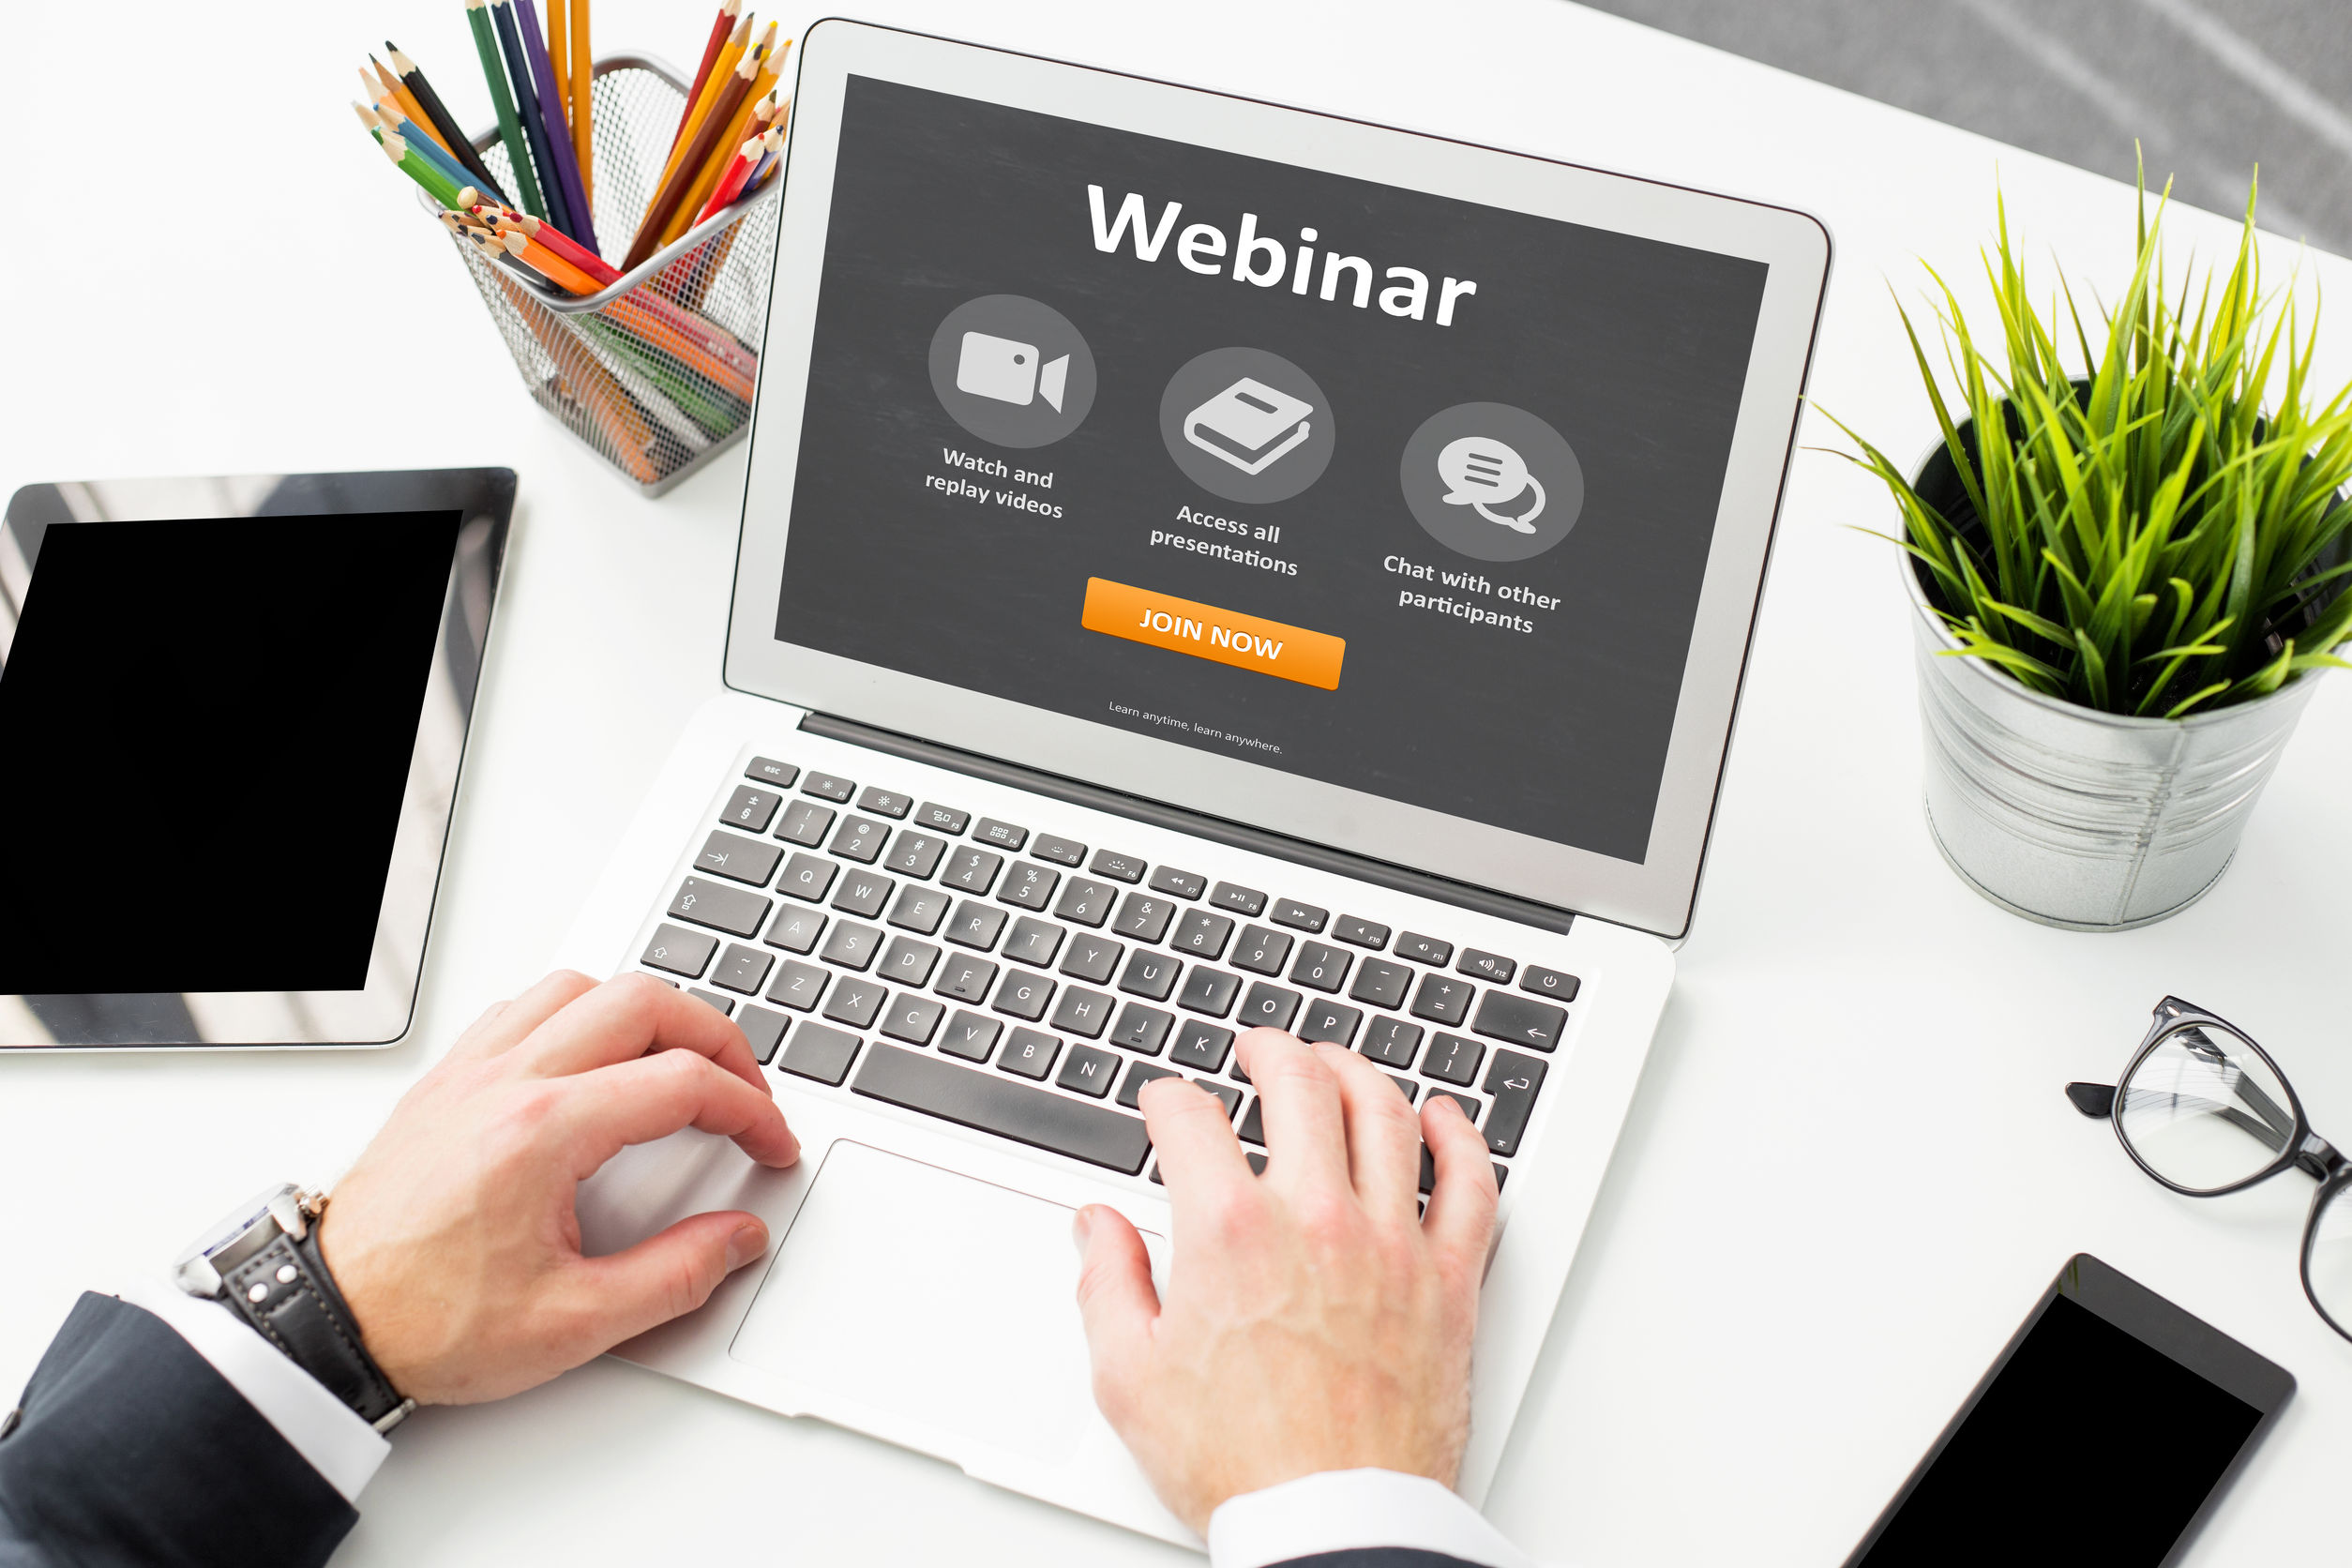 Learn How to Increase Your Operational Efficiency in Our November Webinars